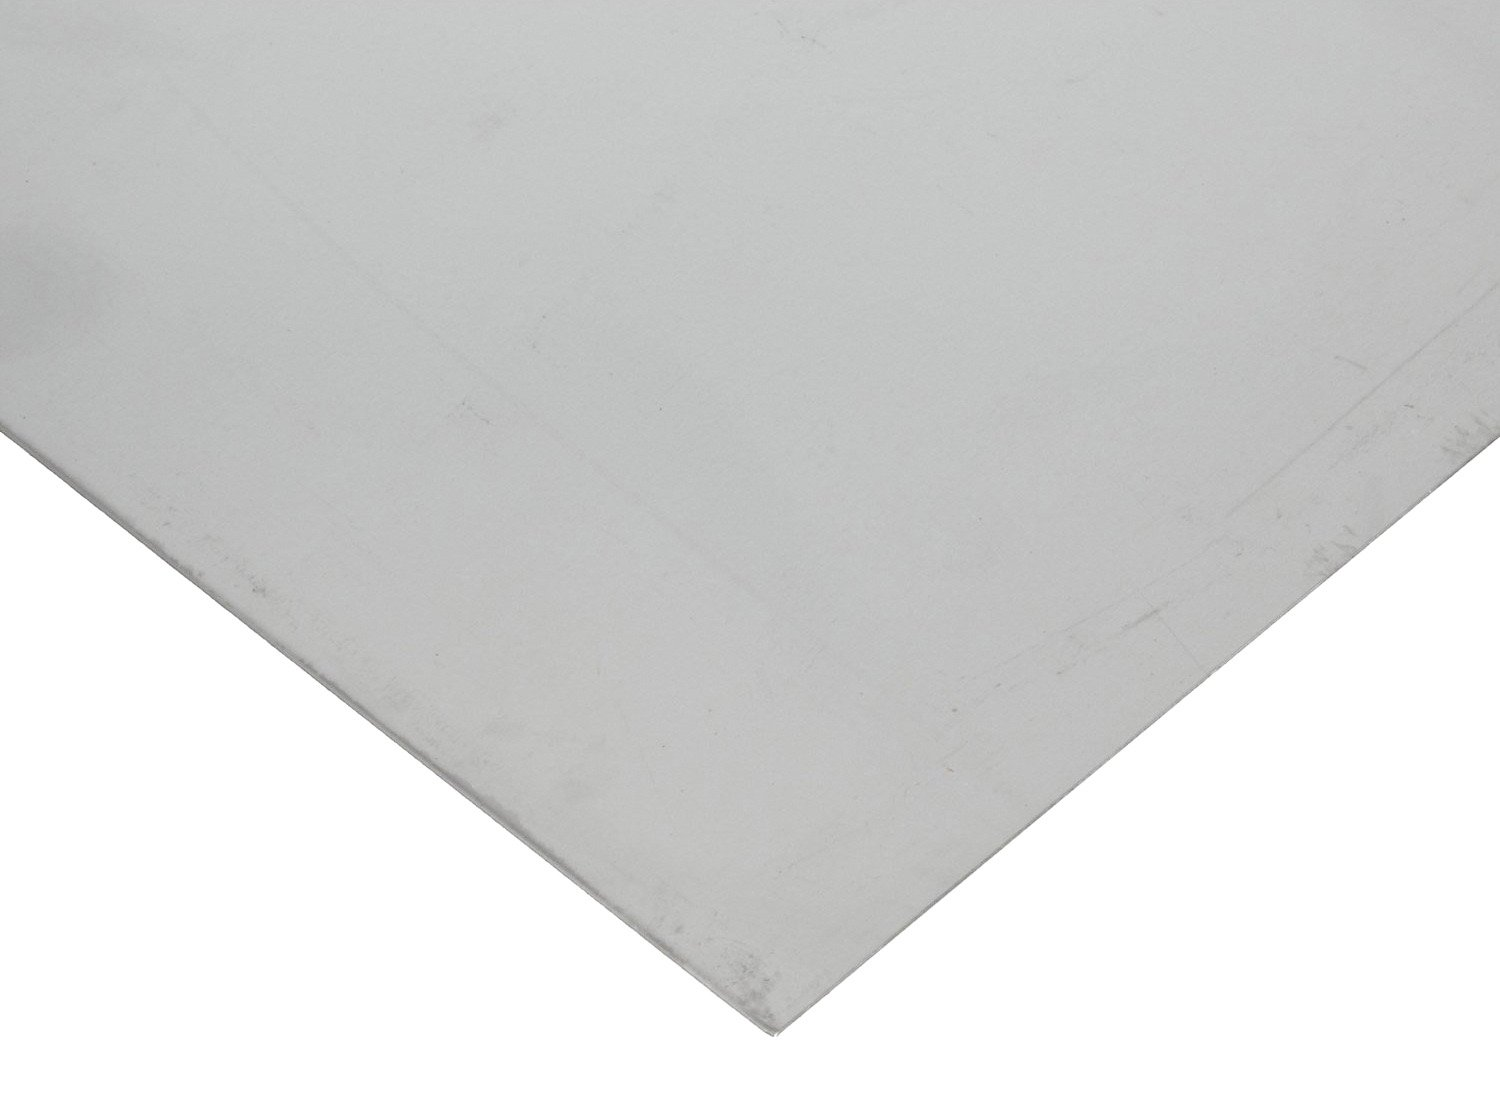 """316 Stainless Steel Sheet, Unpolished (Mill) Finish, Annealed, ASTM A240, 0.036"""" Thickness, 24"""" Width, 36"""" Length, 16 Gauge"""